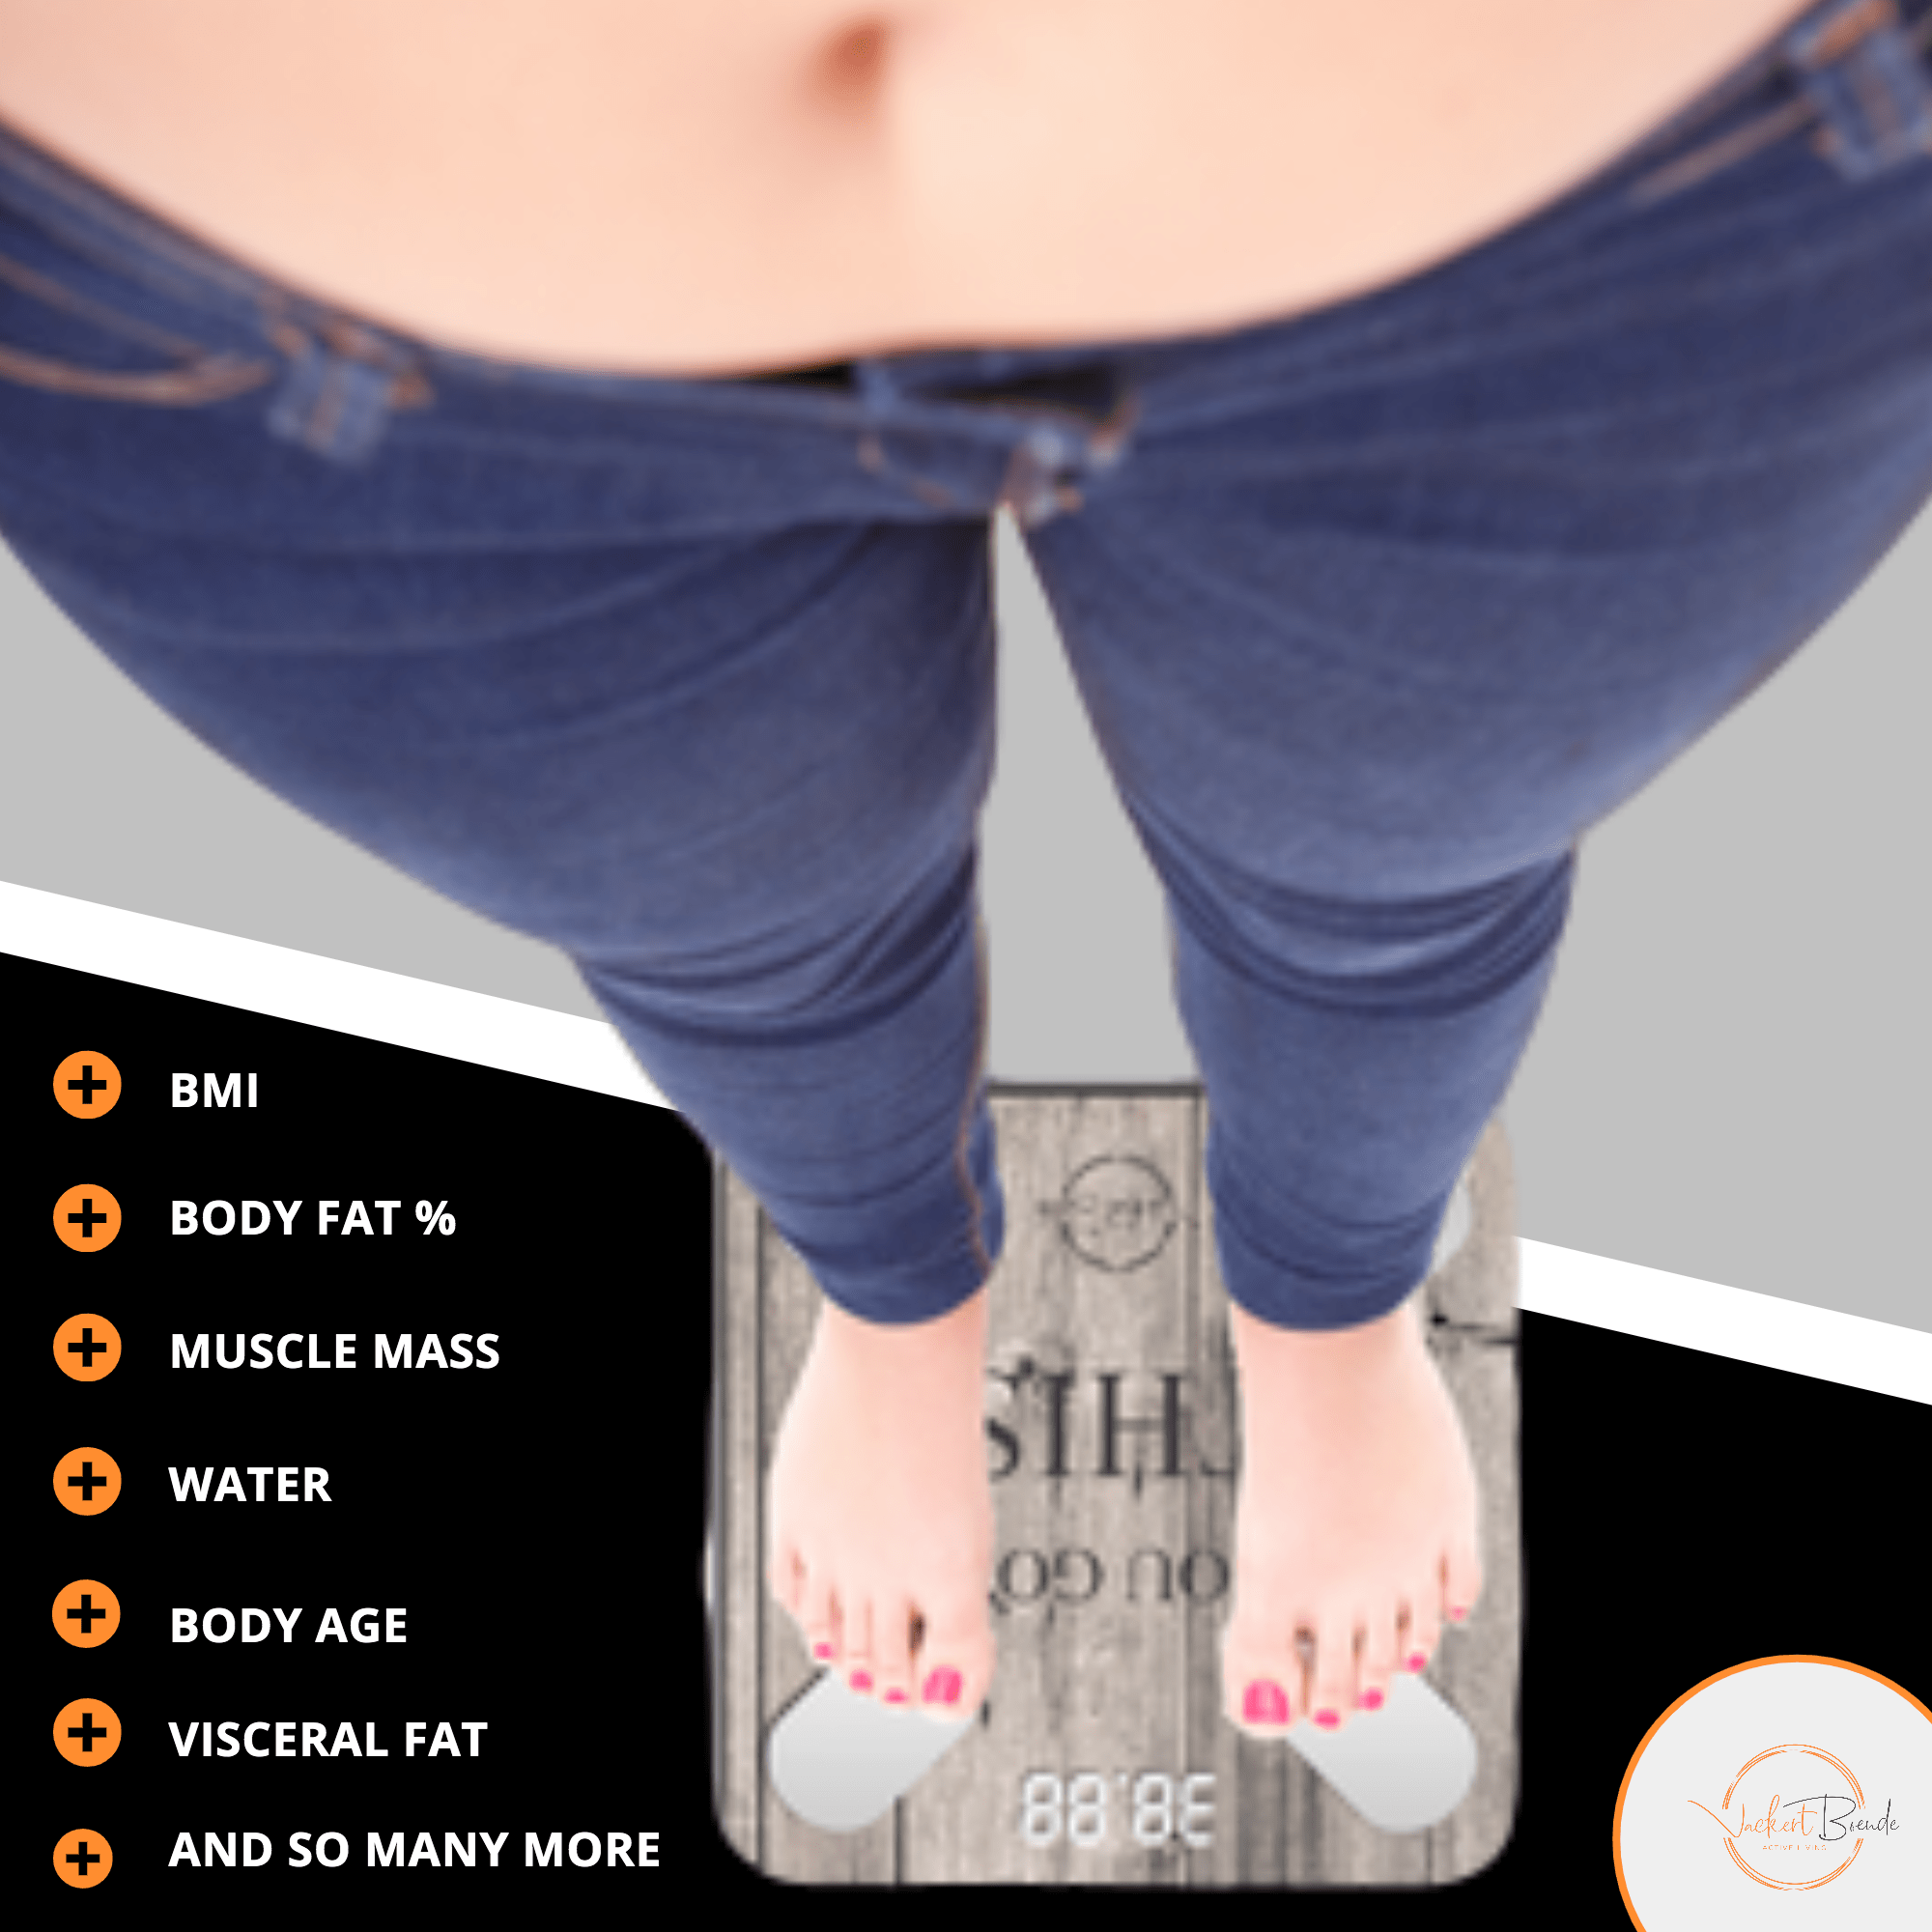 bmi weight scale